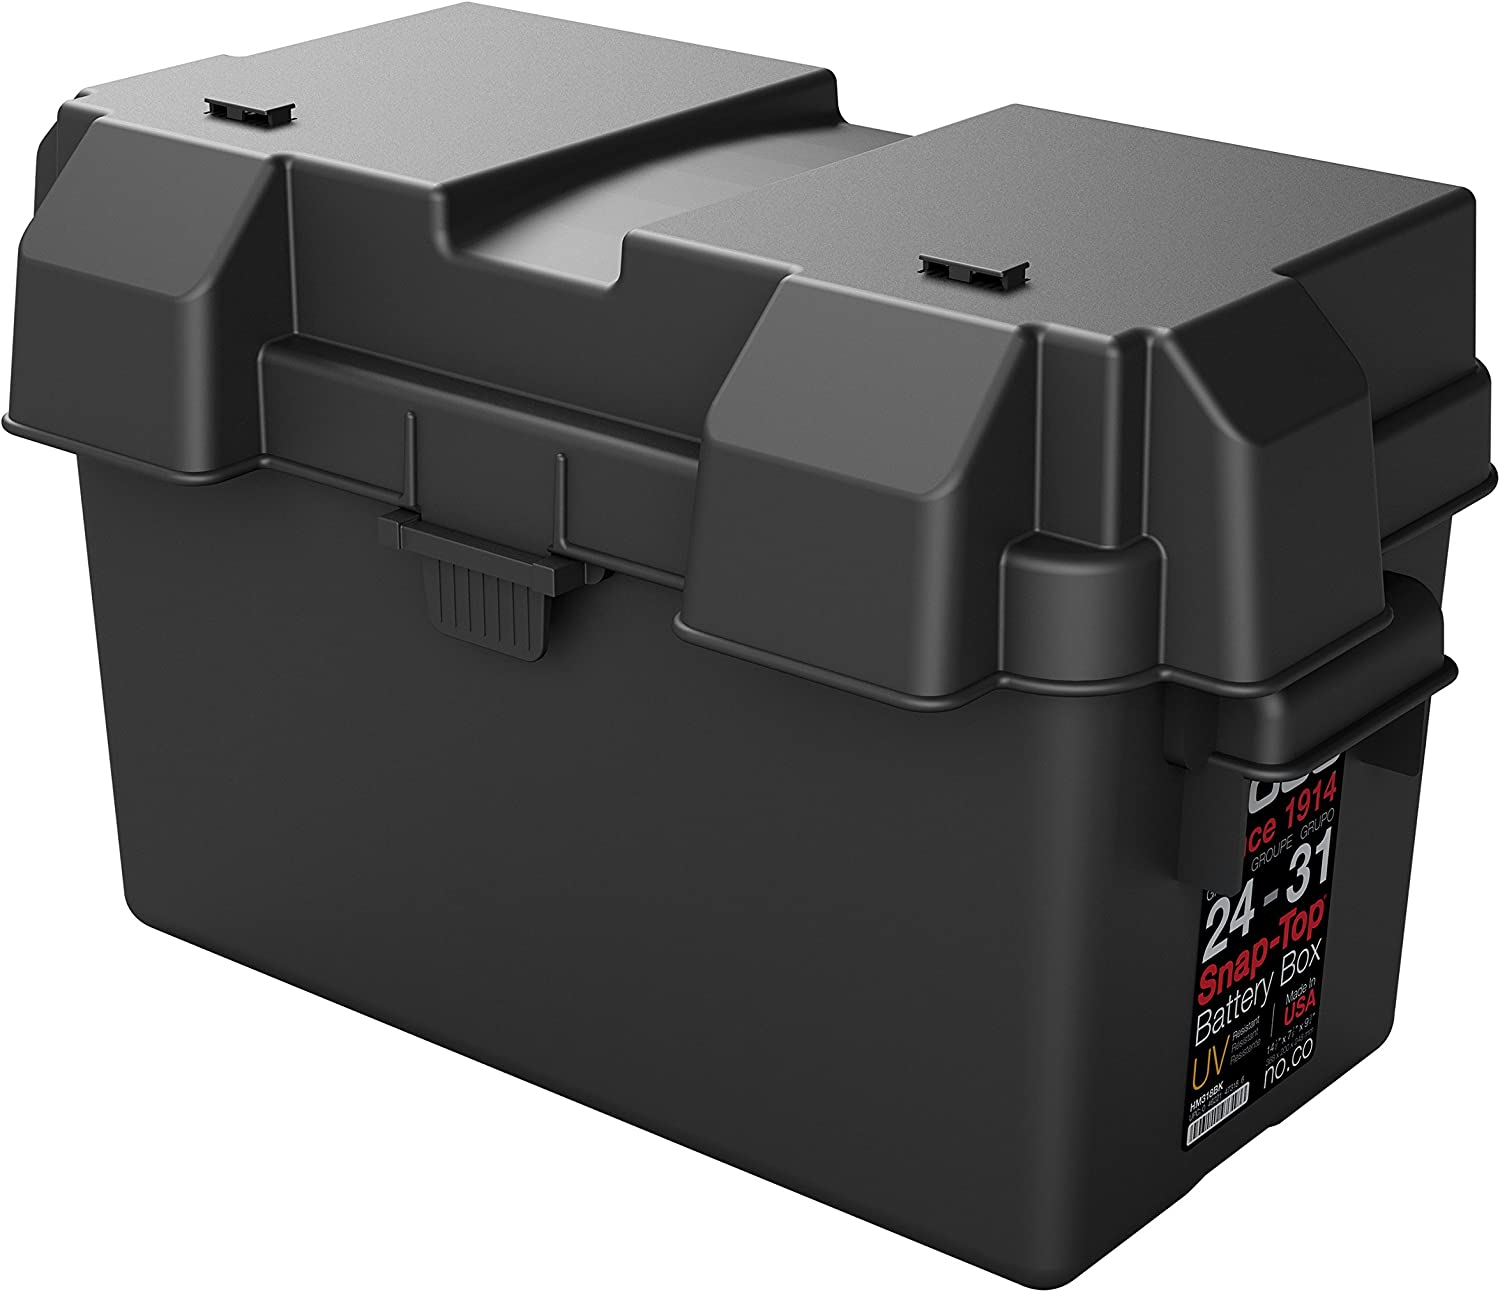 NOCO HM318BKS Group 24-31 Snap-Top Battery Box For RV, Camper And Trailer Batteries